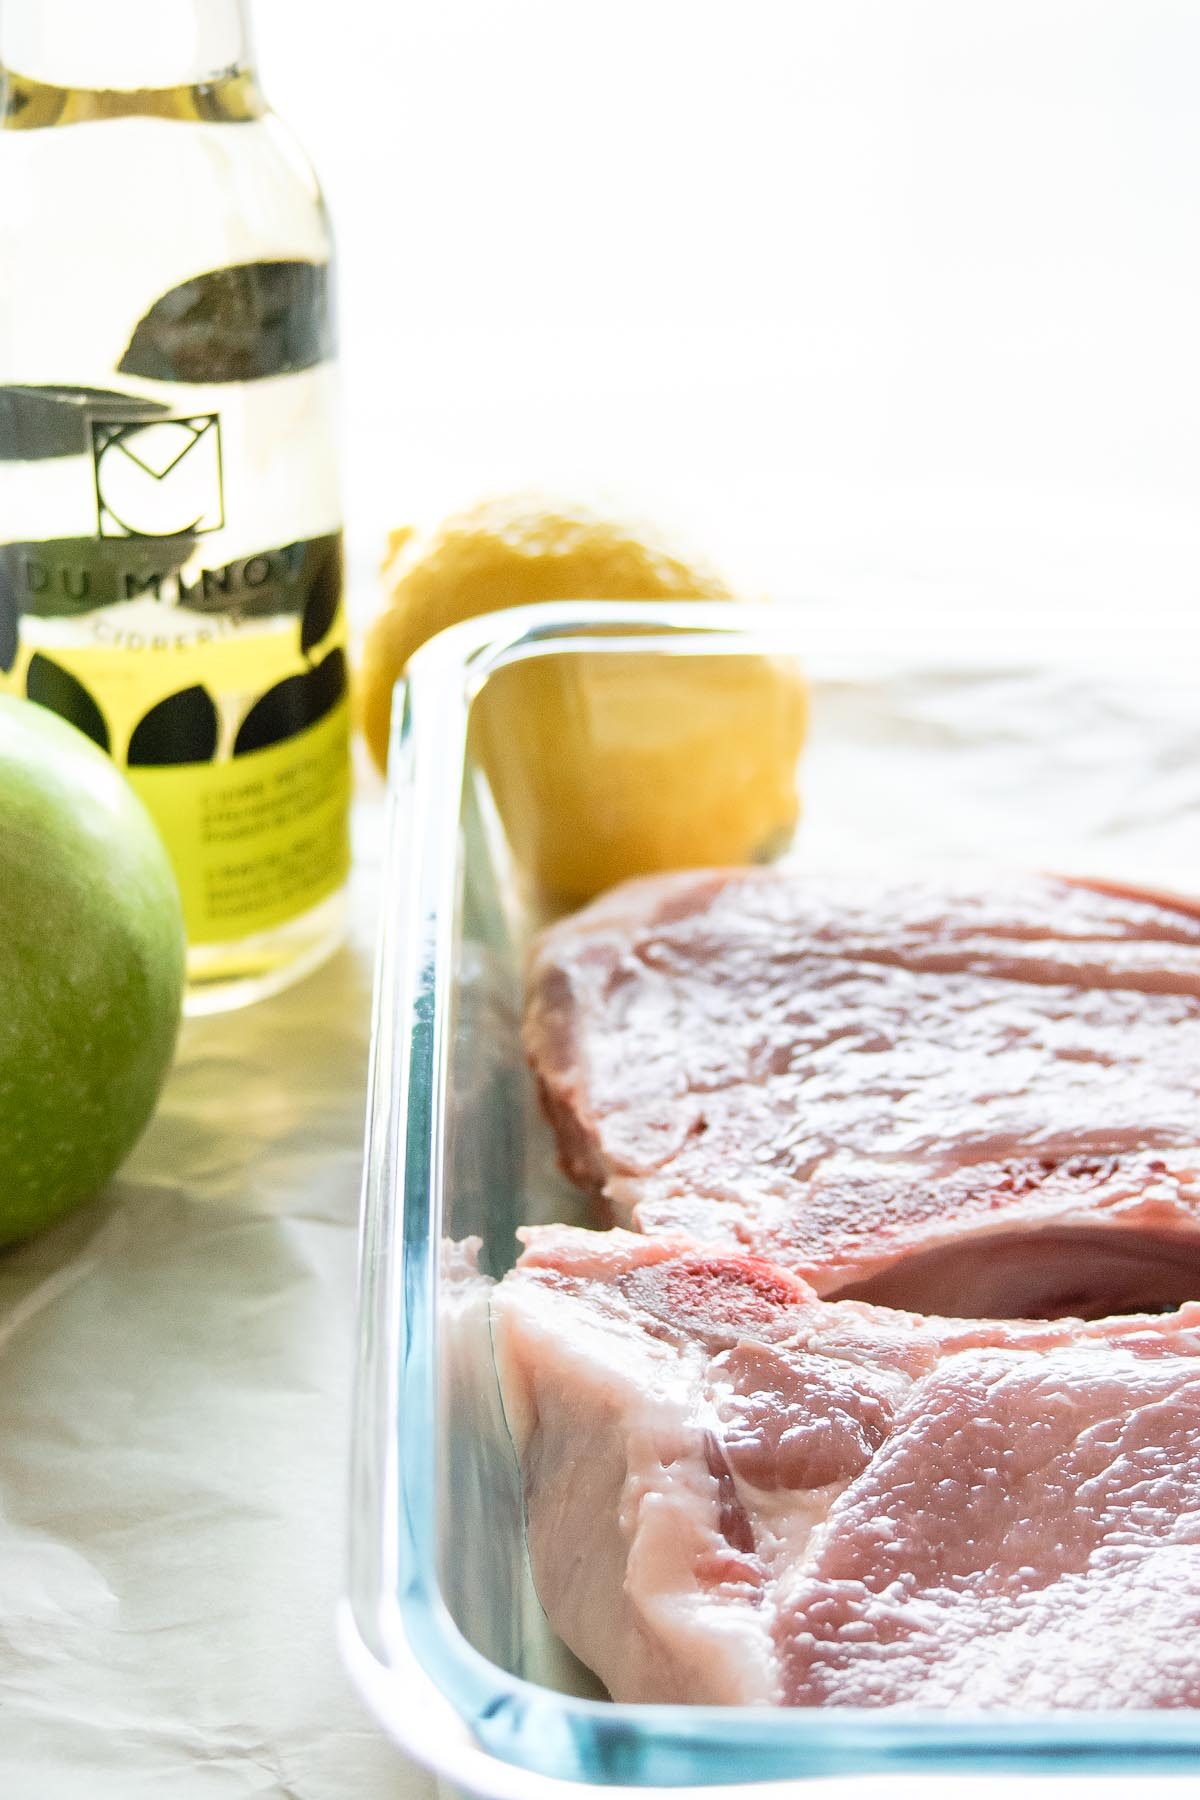 This Juicy Lemon Apple Cider Pork Chops recipe is the bomb-diggity! They feature a tangy citrus flavor with the sweetness of apple cider, perfect for fall! - thebeaderchef.com Pork | Apple | Main Dish | Juicy | Easy | Cider | Fall | Autumn | Cooking for Two | Gluten-Free | Dairy-Free